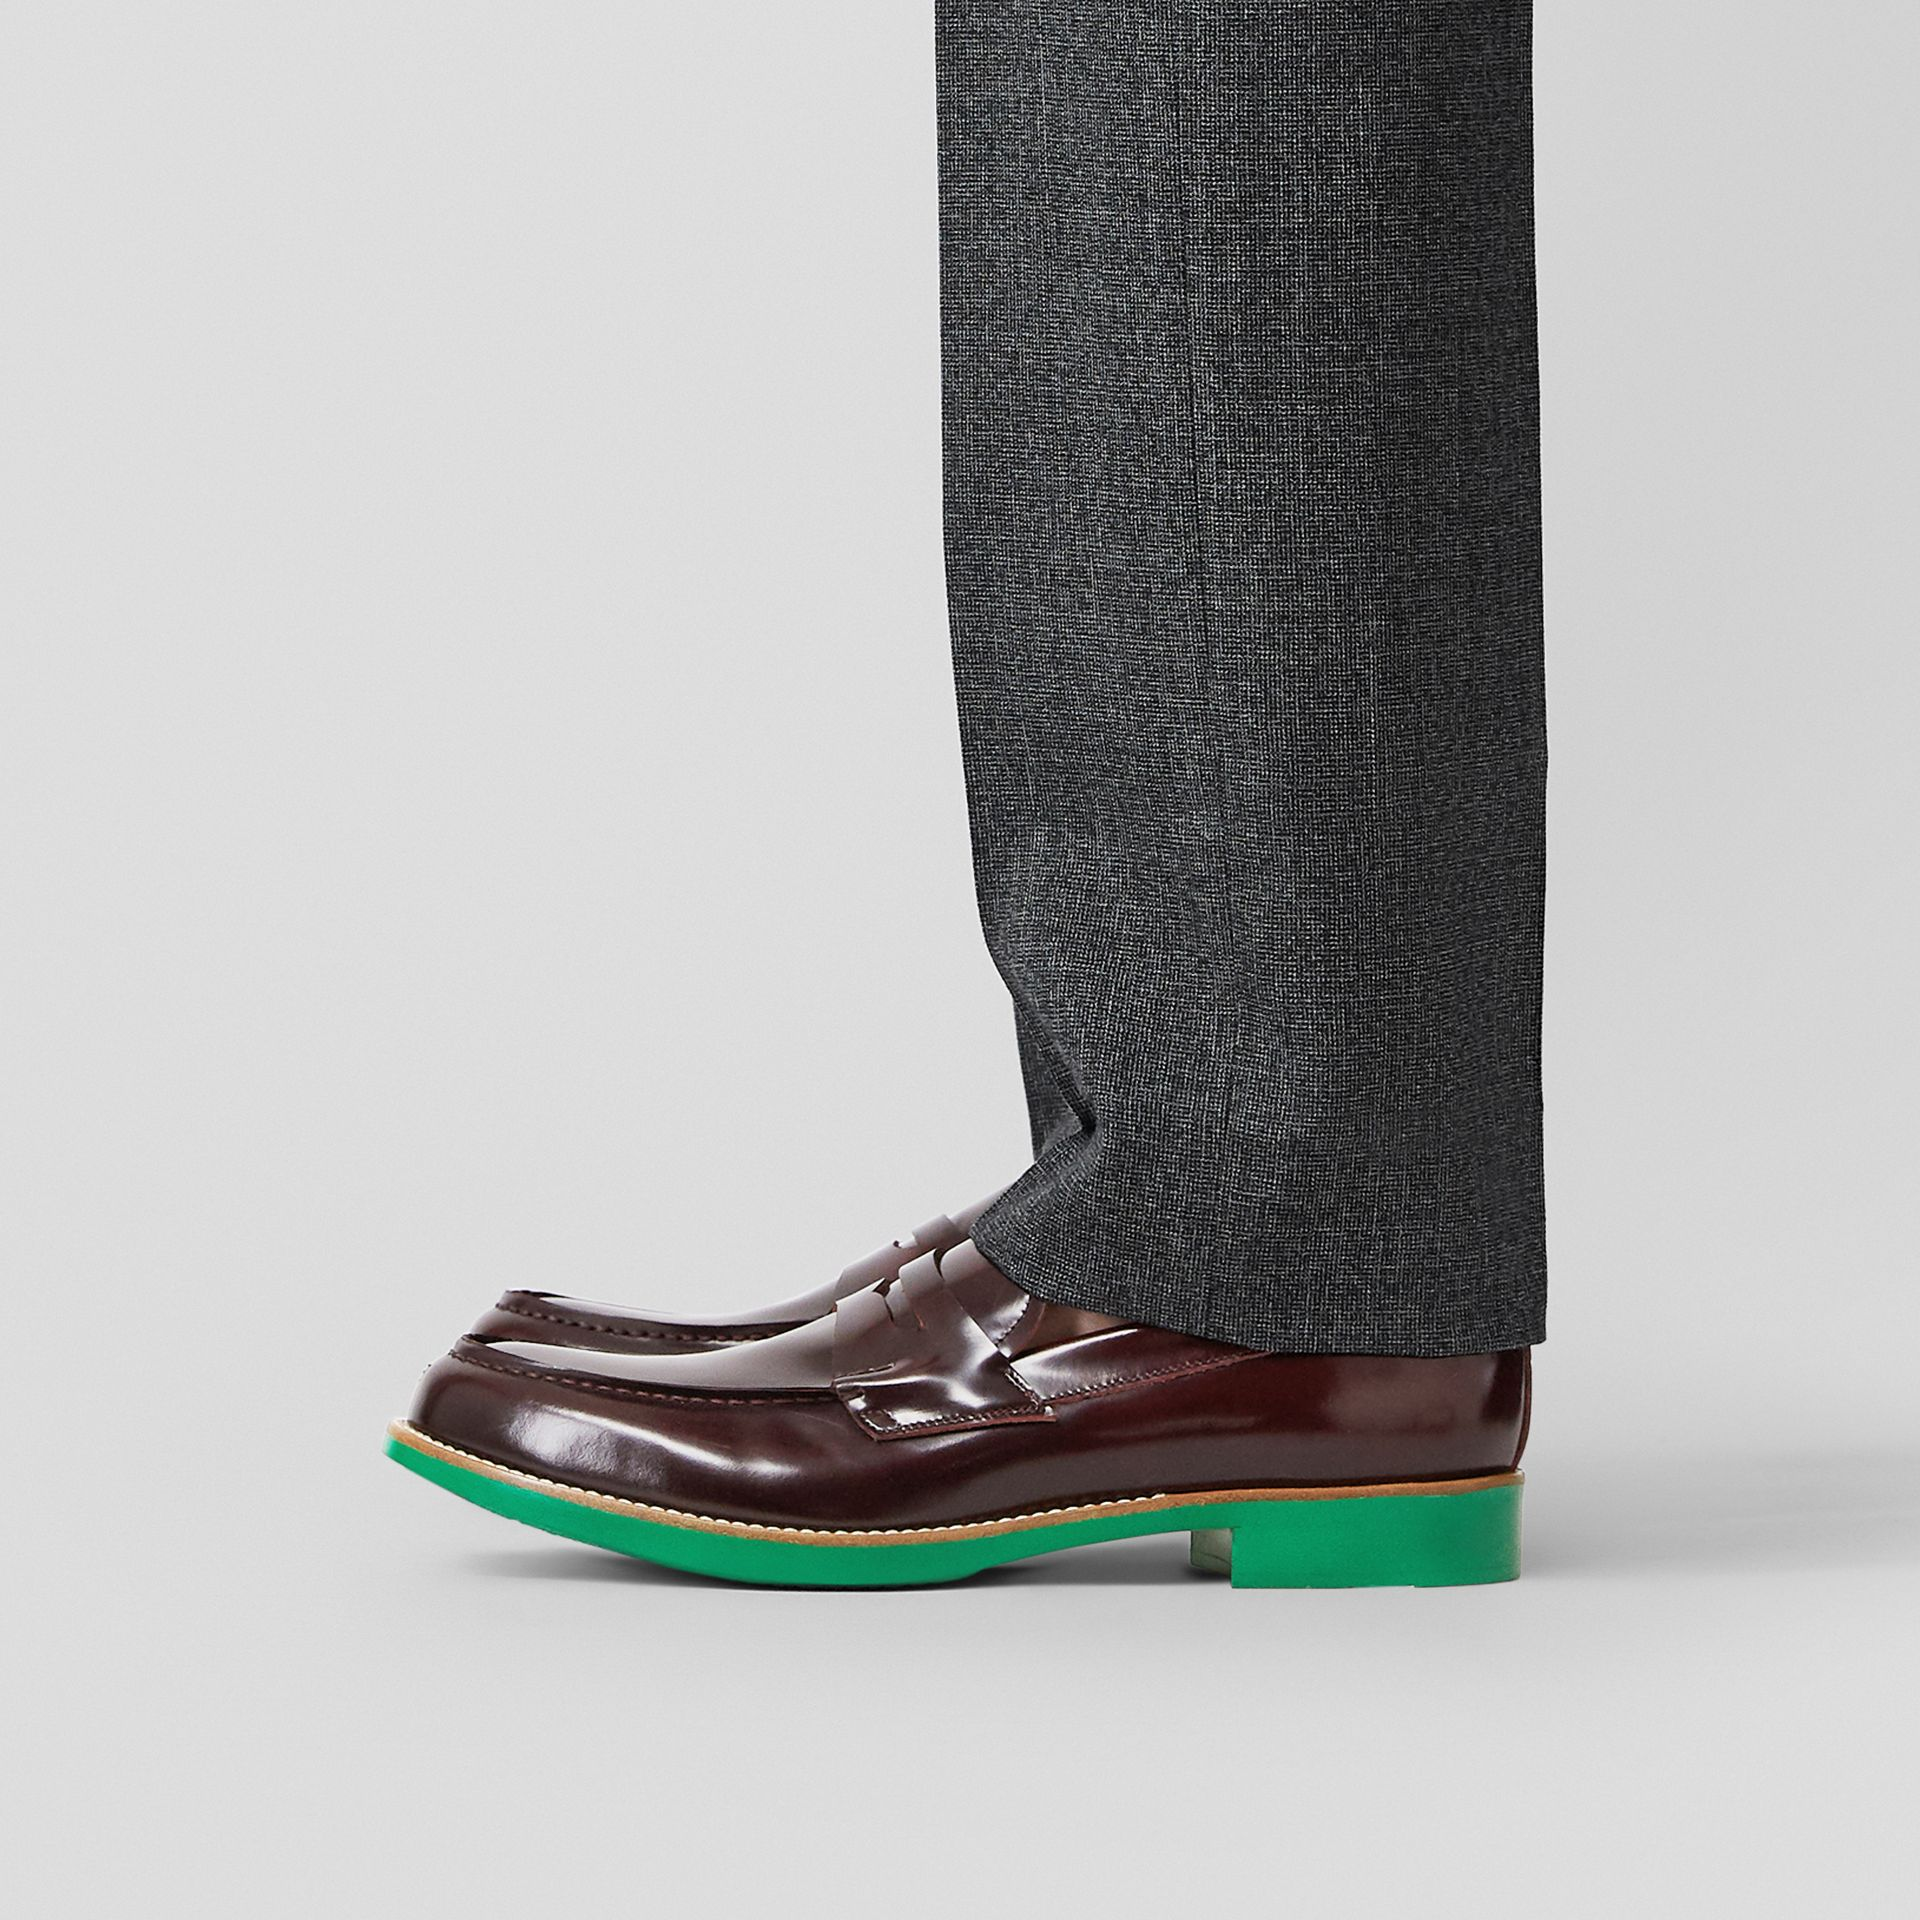 D-ring Detail Contrast Sole Leather Loafers in Bordeaux/green - Men | Burberry Singapore - gallery image 2